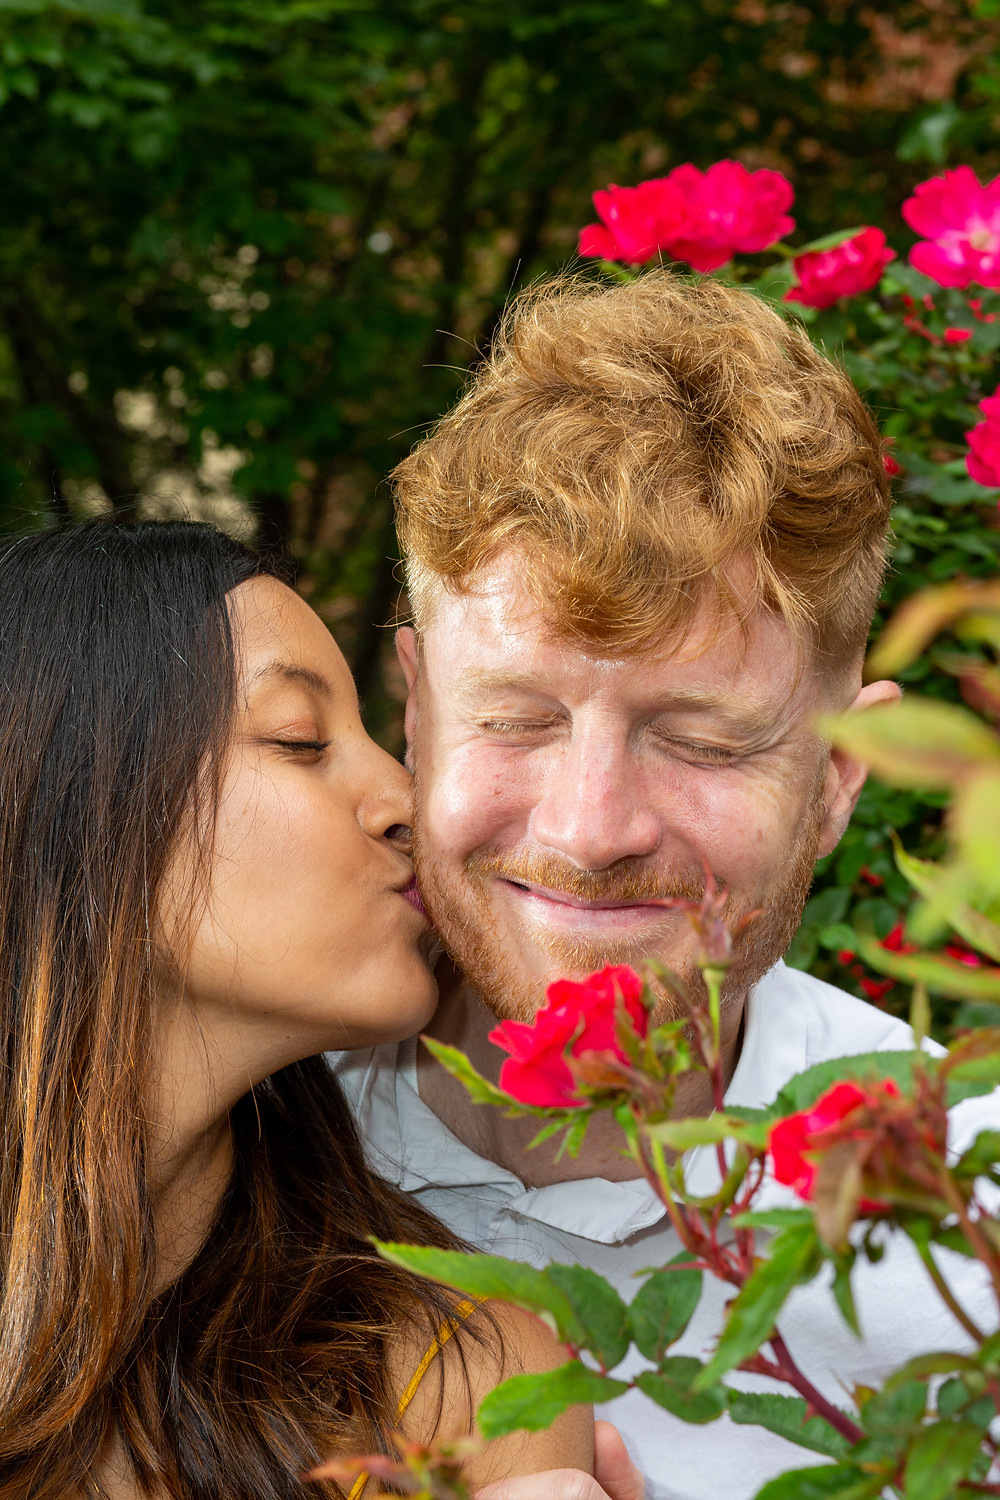 John and UK playfully share an adorable kiss in the rose bushes during the engagement session in Northwest Washington DC.